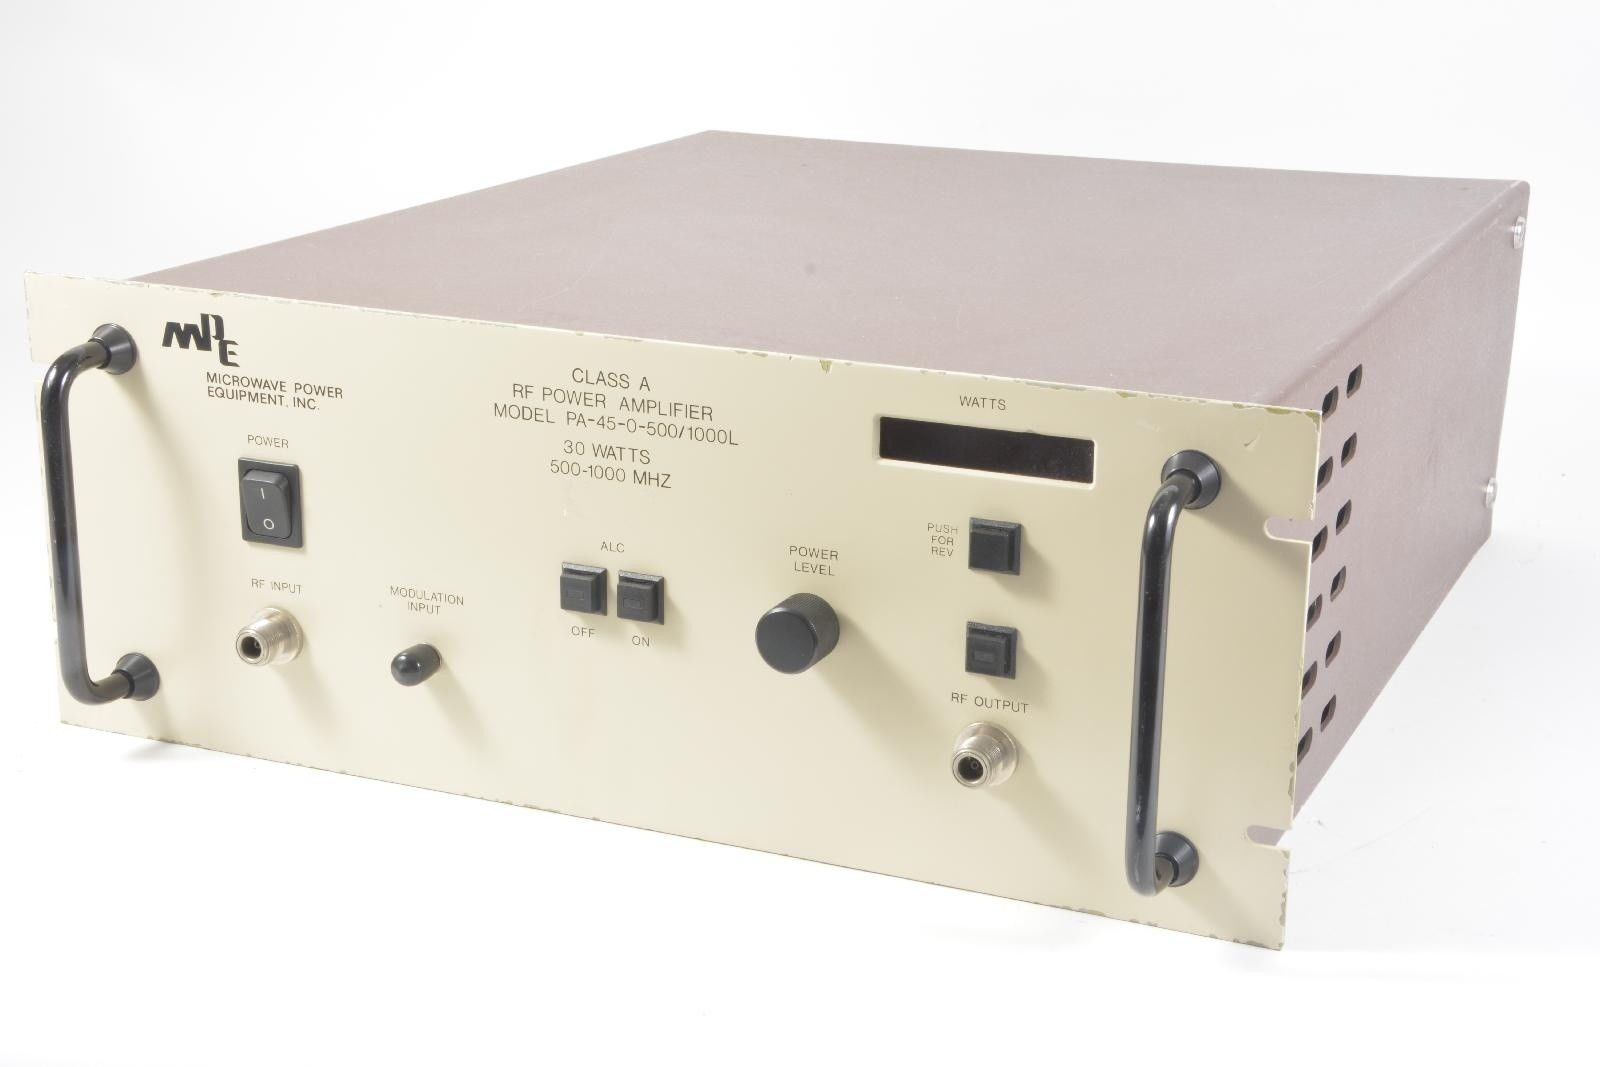 power-amplifier-mpe-class-a-rf-pa-45-0-500-1000l-30-watts-500-1000-mhz-used-equipment-0.jpg